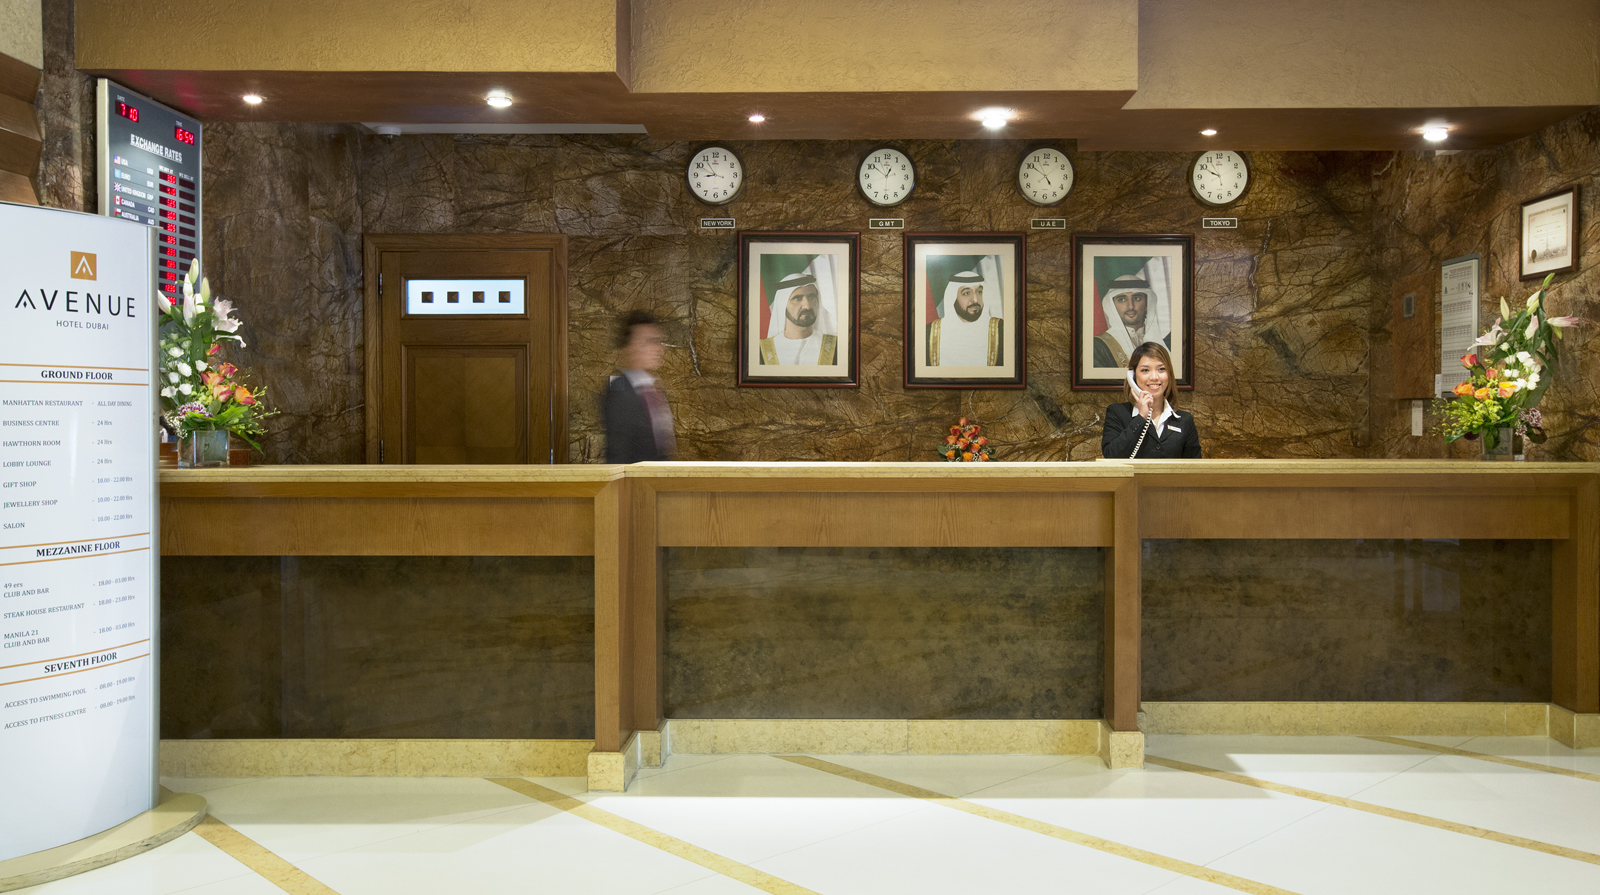 Avenue Hotel Dubai - Contact